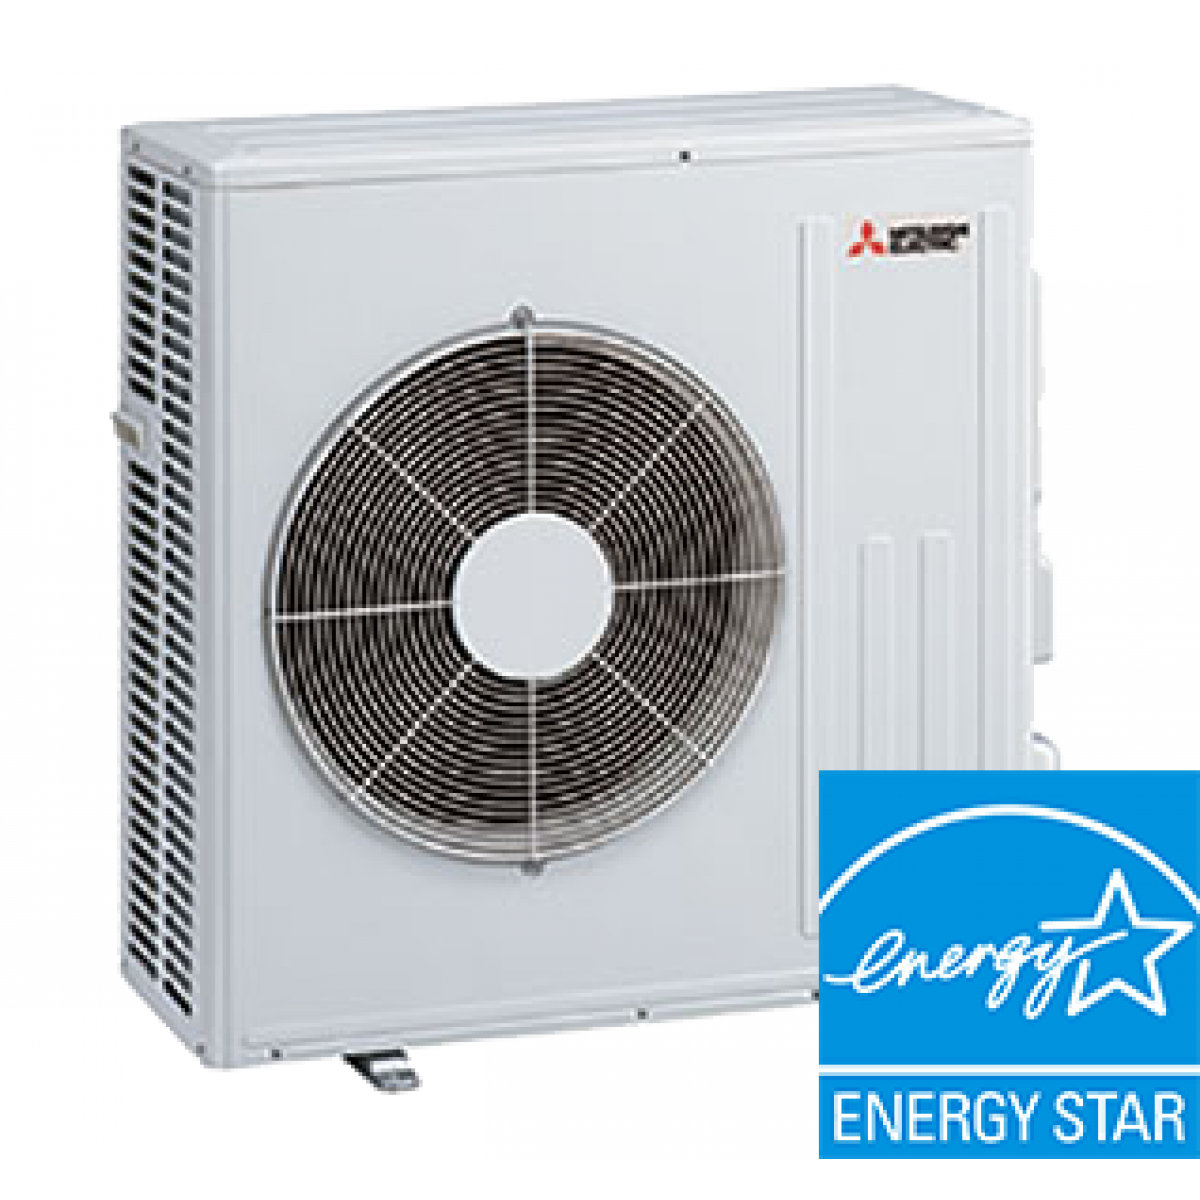 #0382C8 Mitsubishi 24K BTU 20.5 SEER Cooling Only System In Single  Best 10833 Air Conditioning Mitsubishi photos with 1200x1200 px on helpvideos.info - Air Conditioners, Air Coolers and more